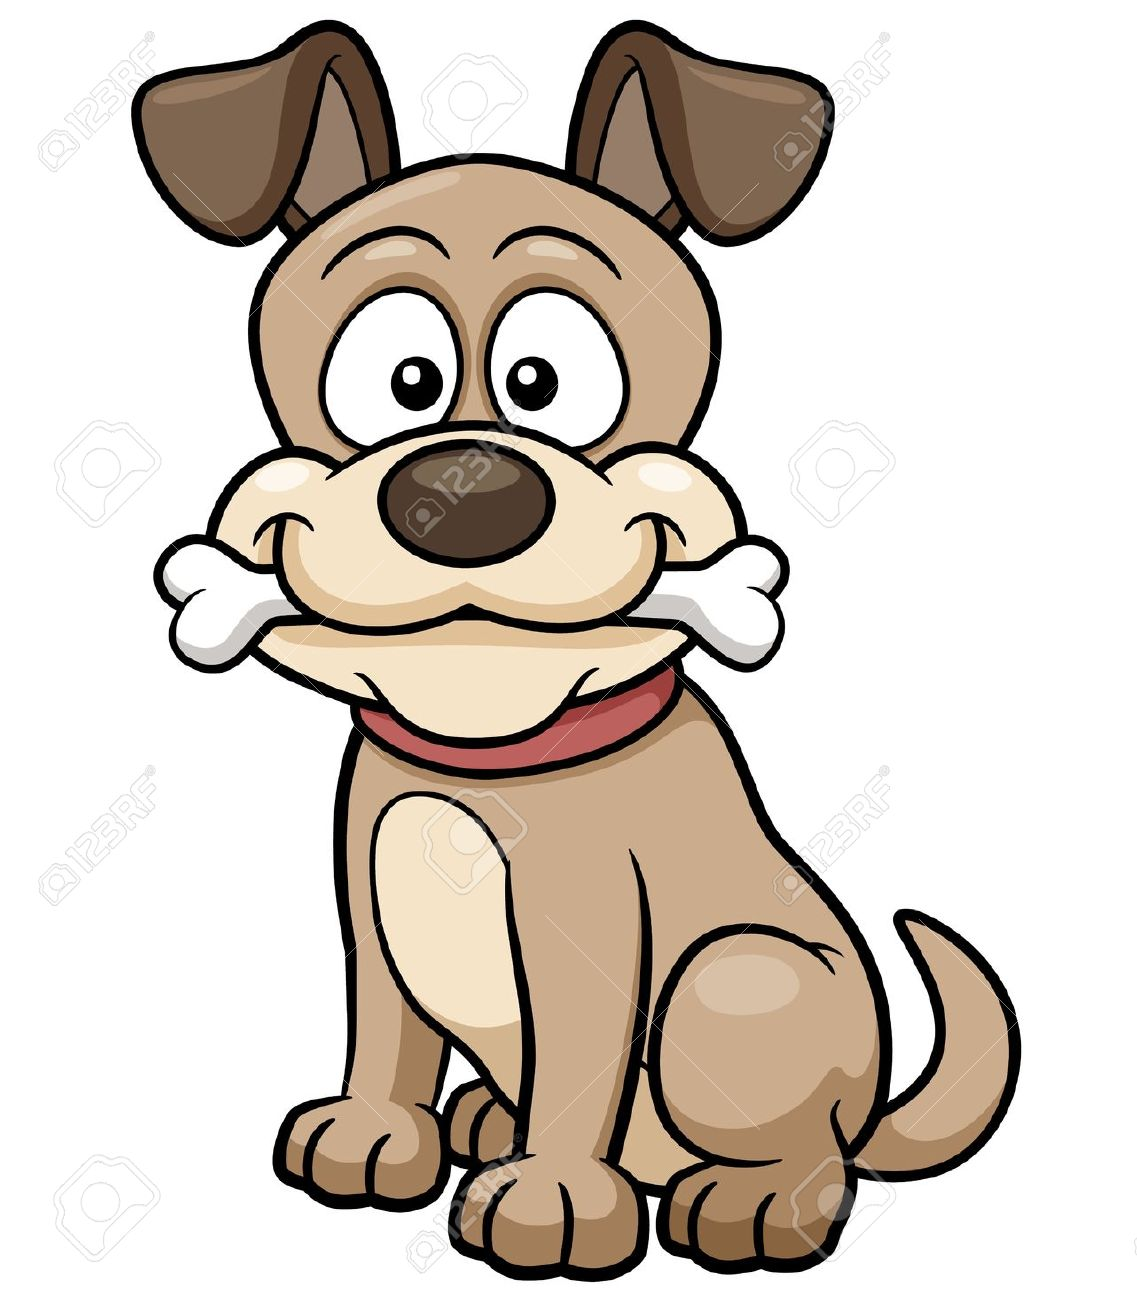 Clipart os chien clipground - Dessin os pour chien ...